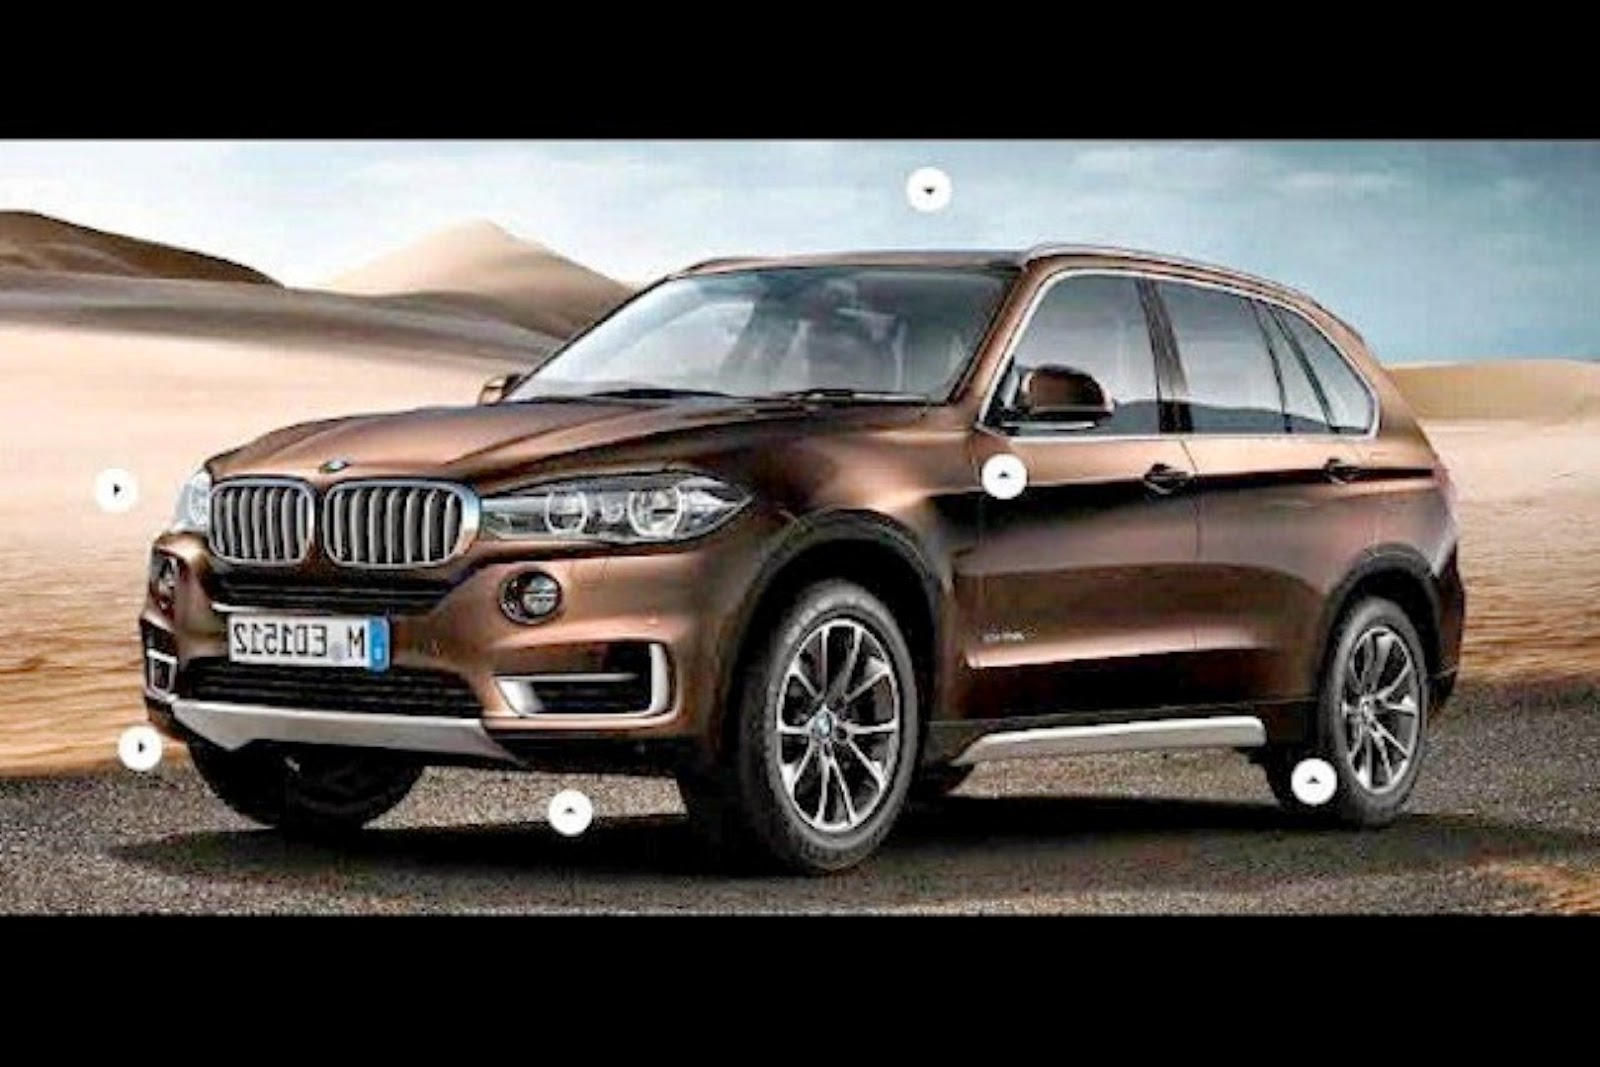 New 2014 Bmw X7 Car Wallpaper High Quality